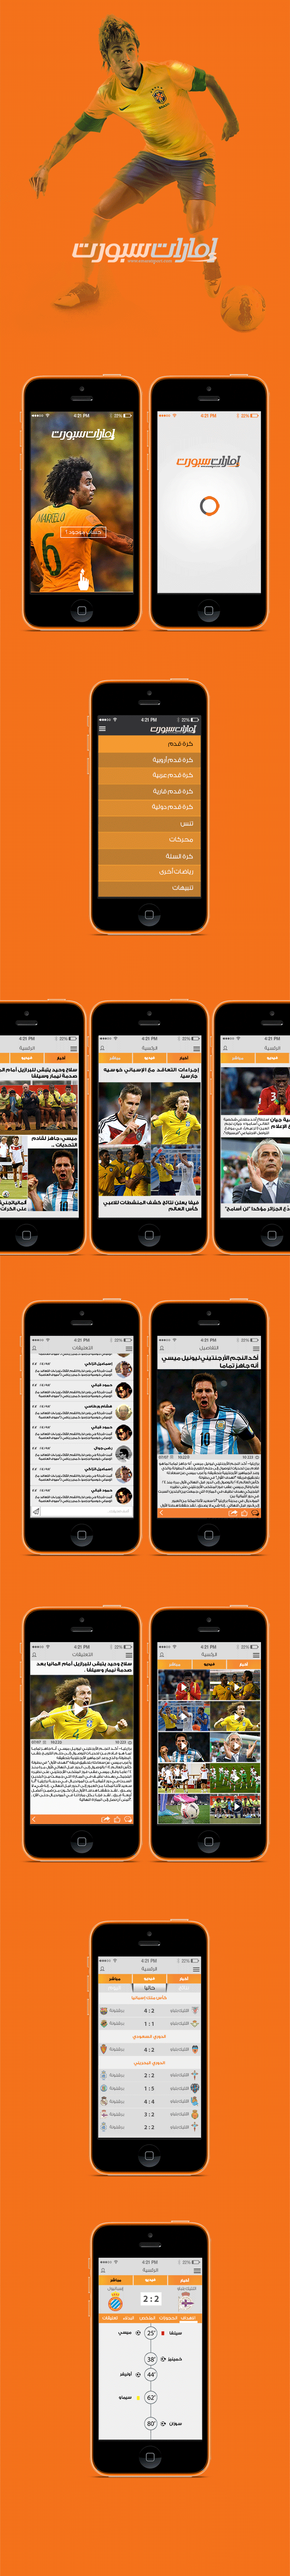 Emaratsport Apps Mobile